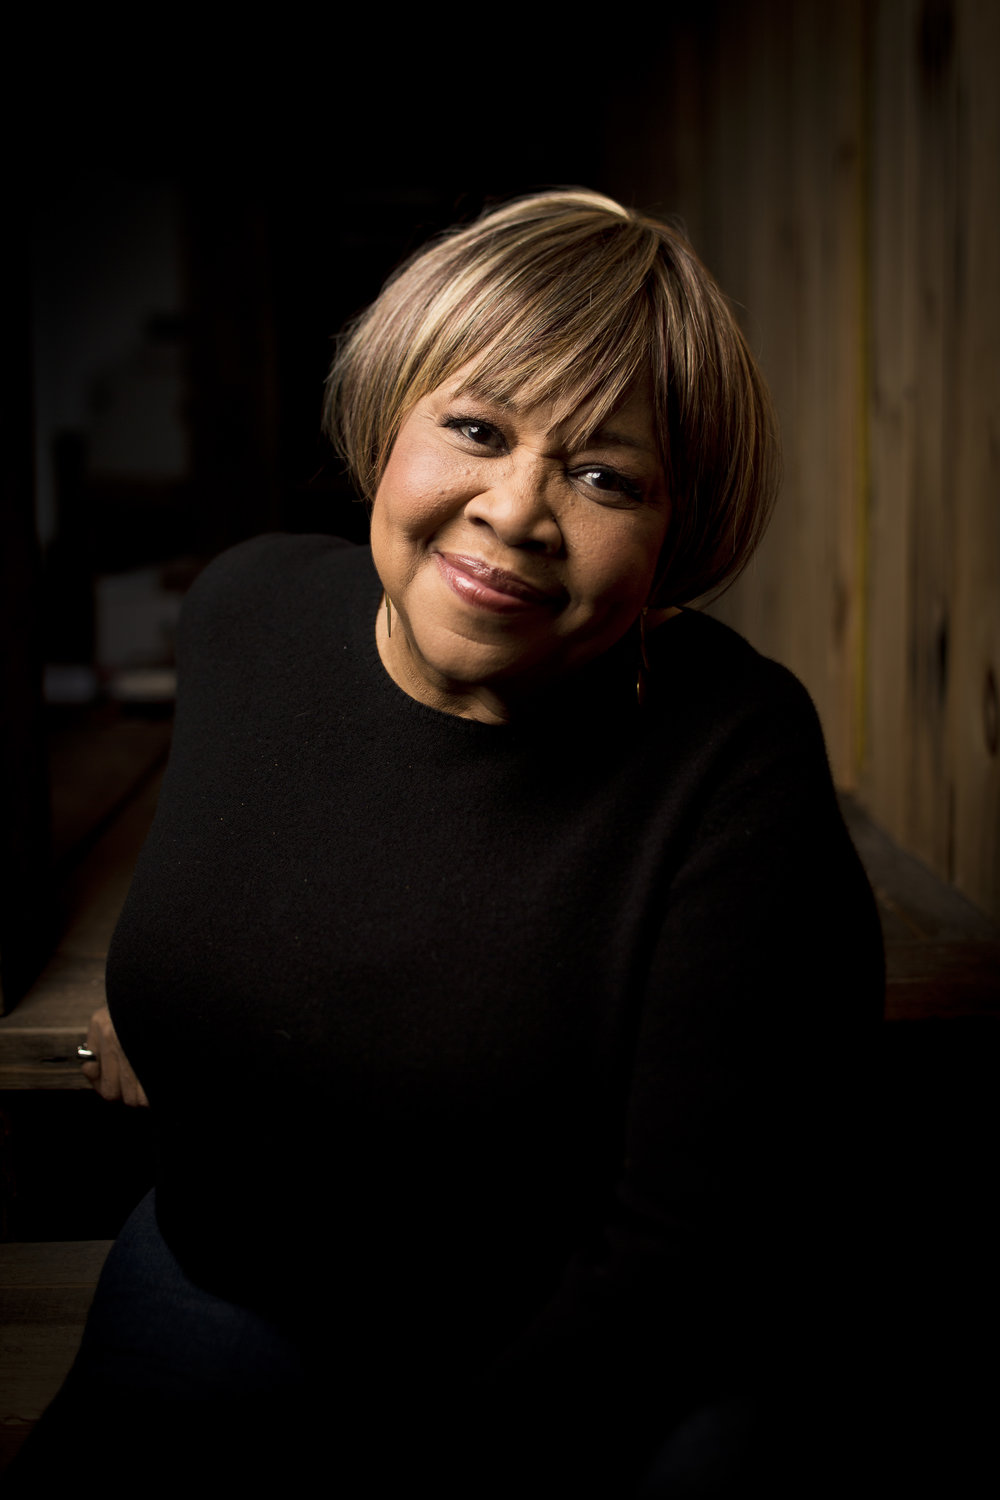 Mavis Staples | Landmark on Main Street | 06.04.17 | 7 PM